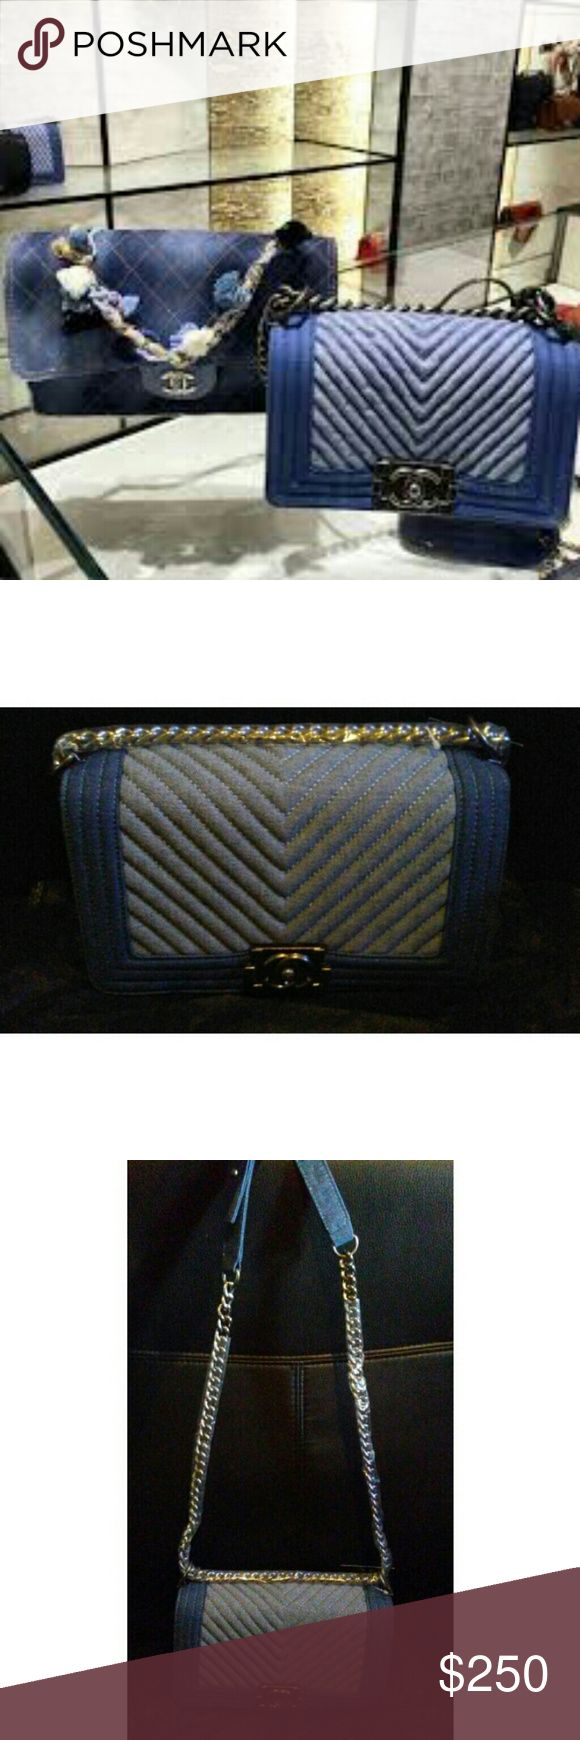 Chanel Denim Boy Bag 🎊1 DAY SALE🎊 Inspired denim handbag. LAST PIC IS FROM MY PREVIOUS POSH I WAS A TOP RATED SELLER.                                                          Cute with a top, denim skinny jeans, dress, skirt, shoes, heels, forever 21, steve madden, free people, aldo, bcbg, love & lemons, guess, mossimo, shoe dazzle, just fab, zara, misguided Bags Shoulder Bags